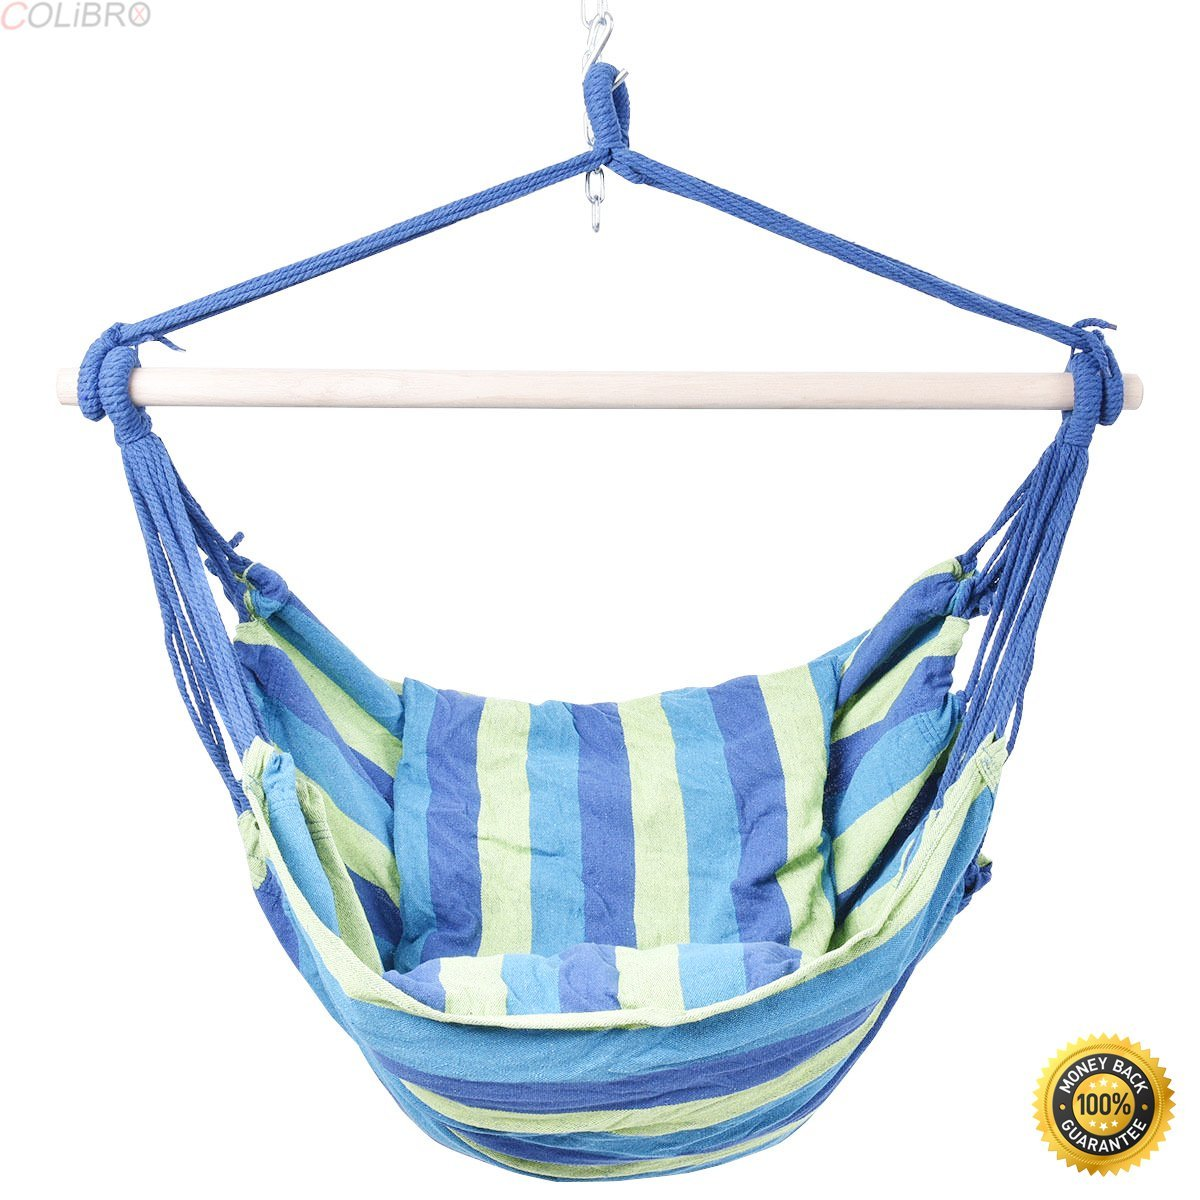 COLIBROX--2PCS Blue &Green Deluxe Hammock Rope Chair Porch Yard Tree Hanging Air Swing,Swing Loveseat Hammock,swing chair outdoor,hammock swing chair,lowes porch swing,portable folding hammock